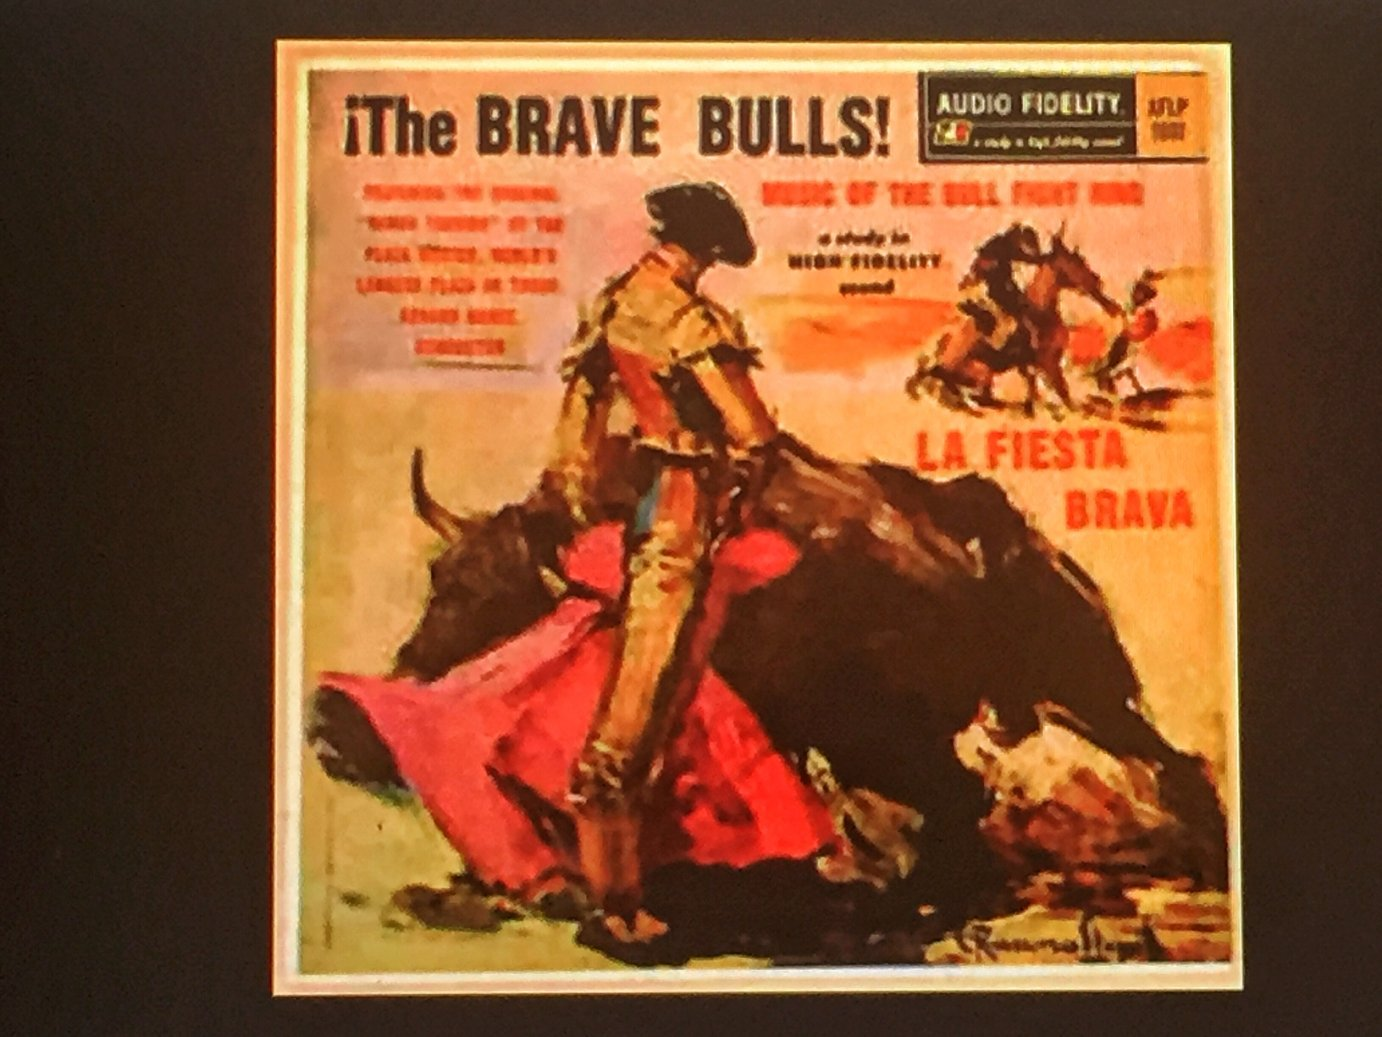 An album cover from 1955 with Latin music honoring matadors and bullfighting. (Photo by J. Schafer)